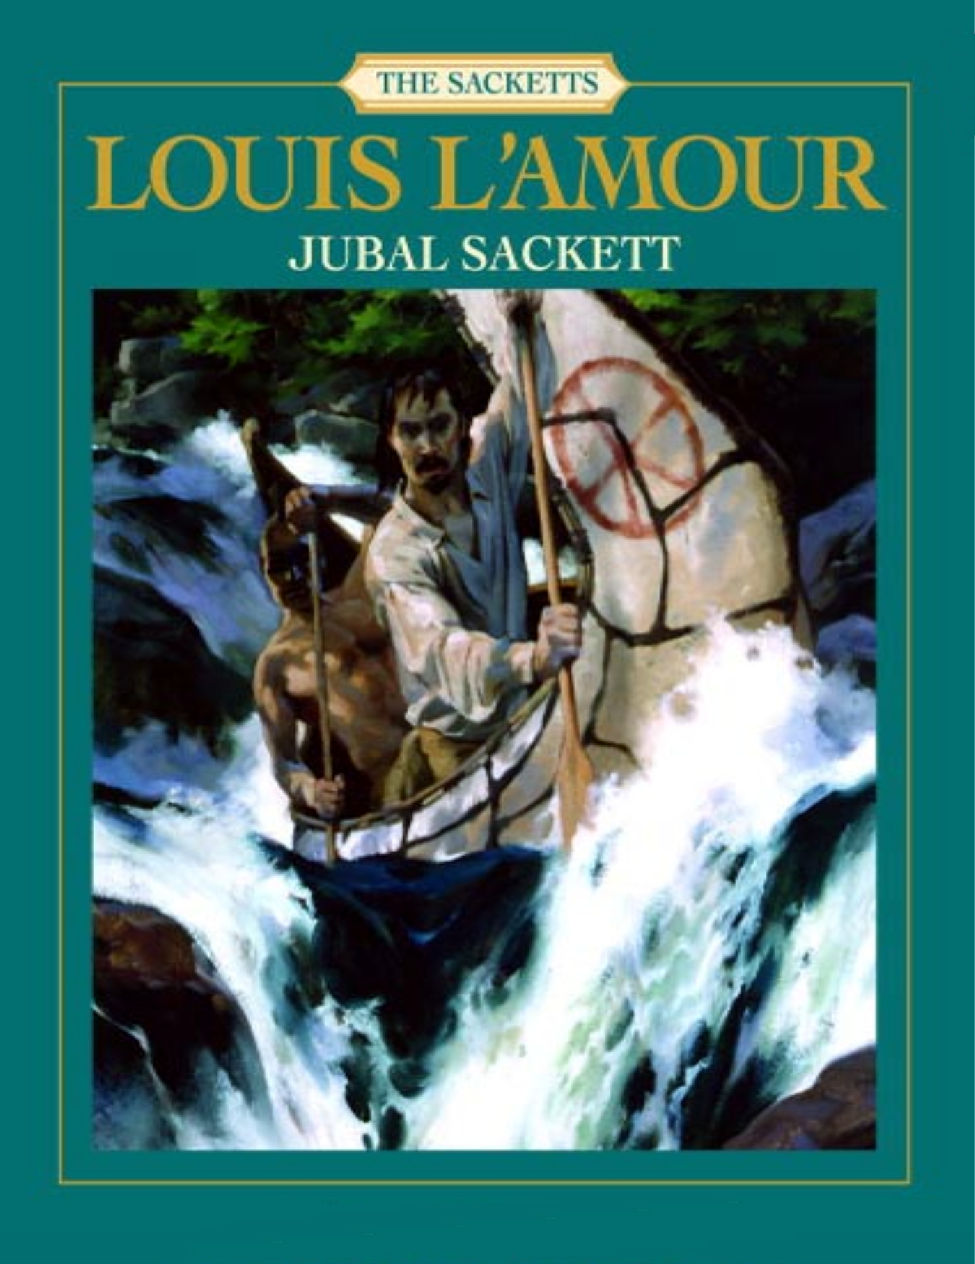 jubal sackett - louis lamour